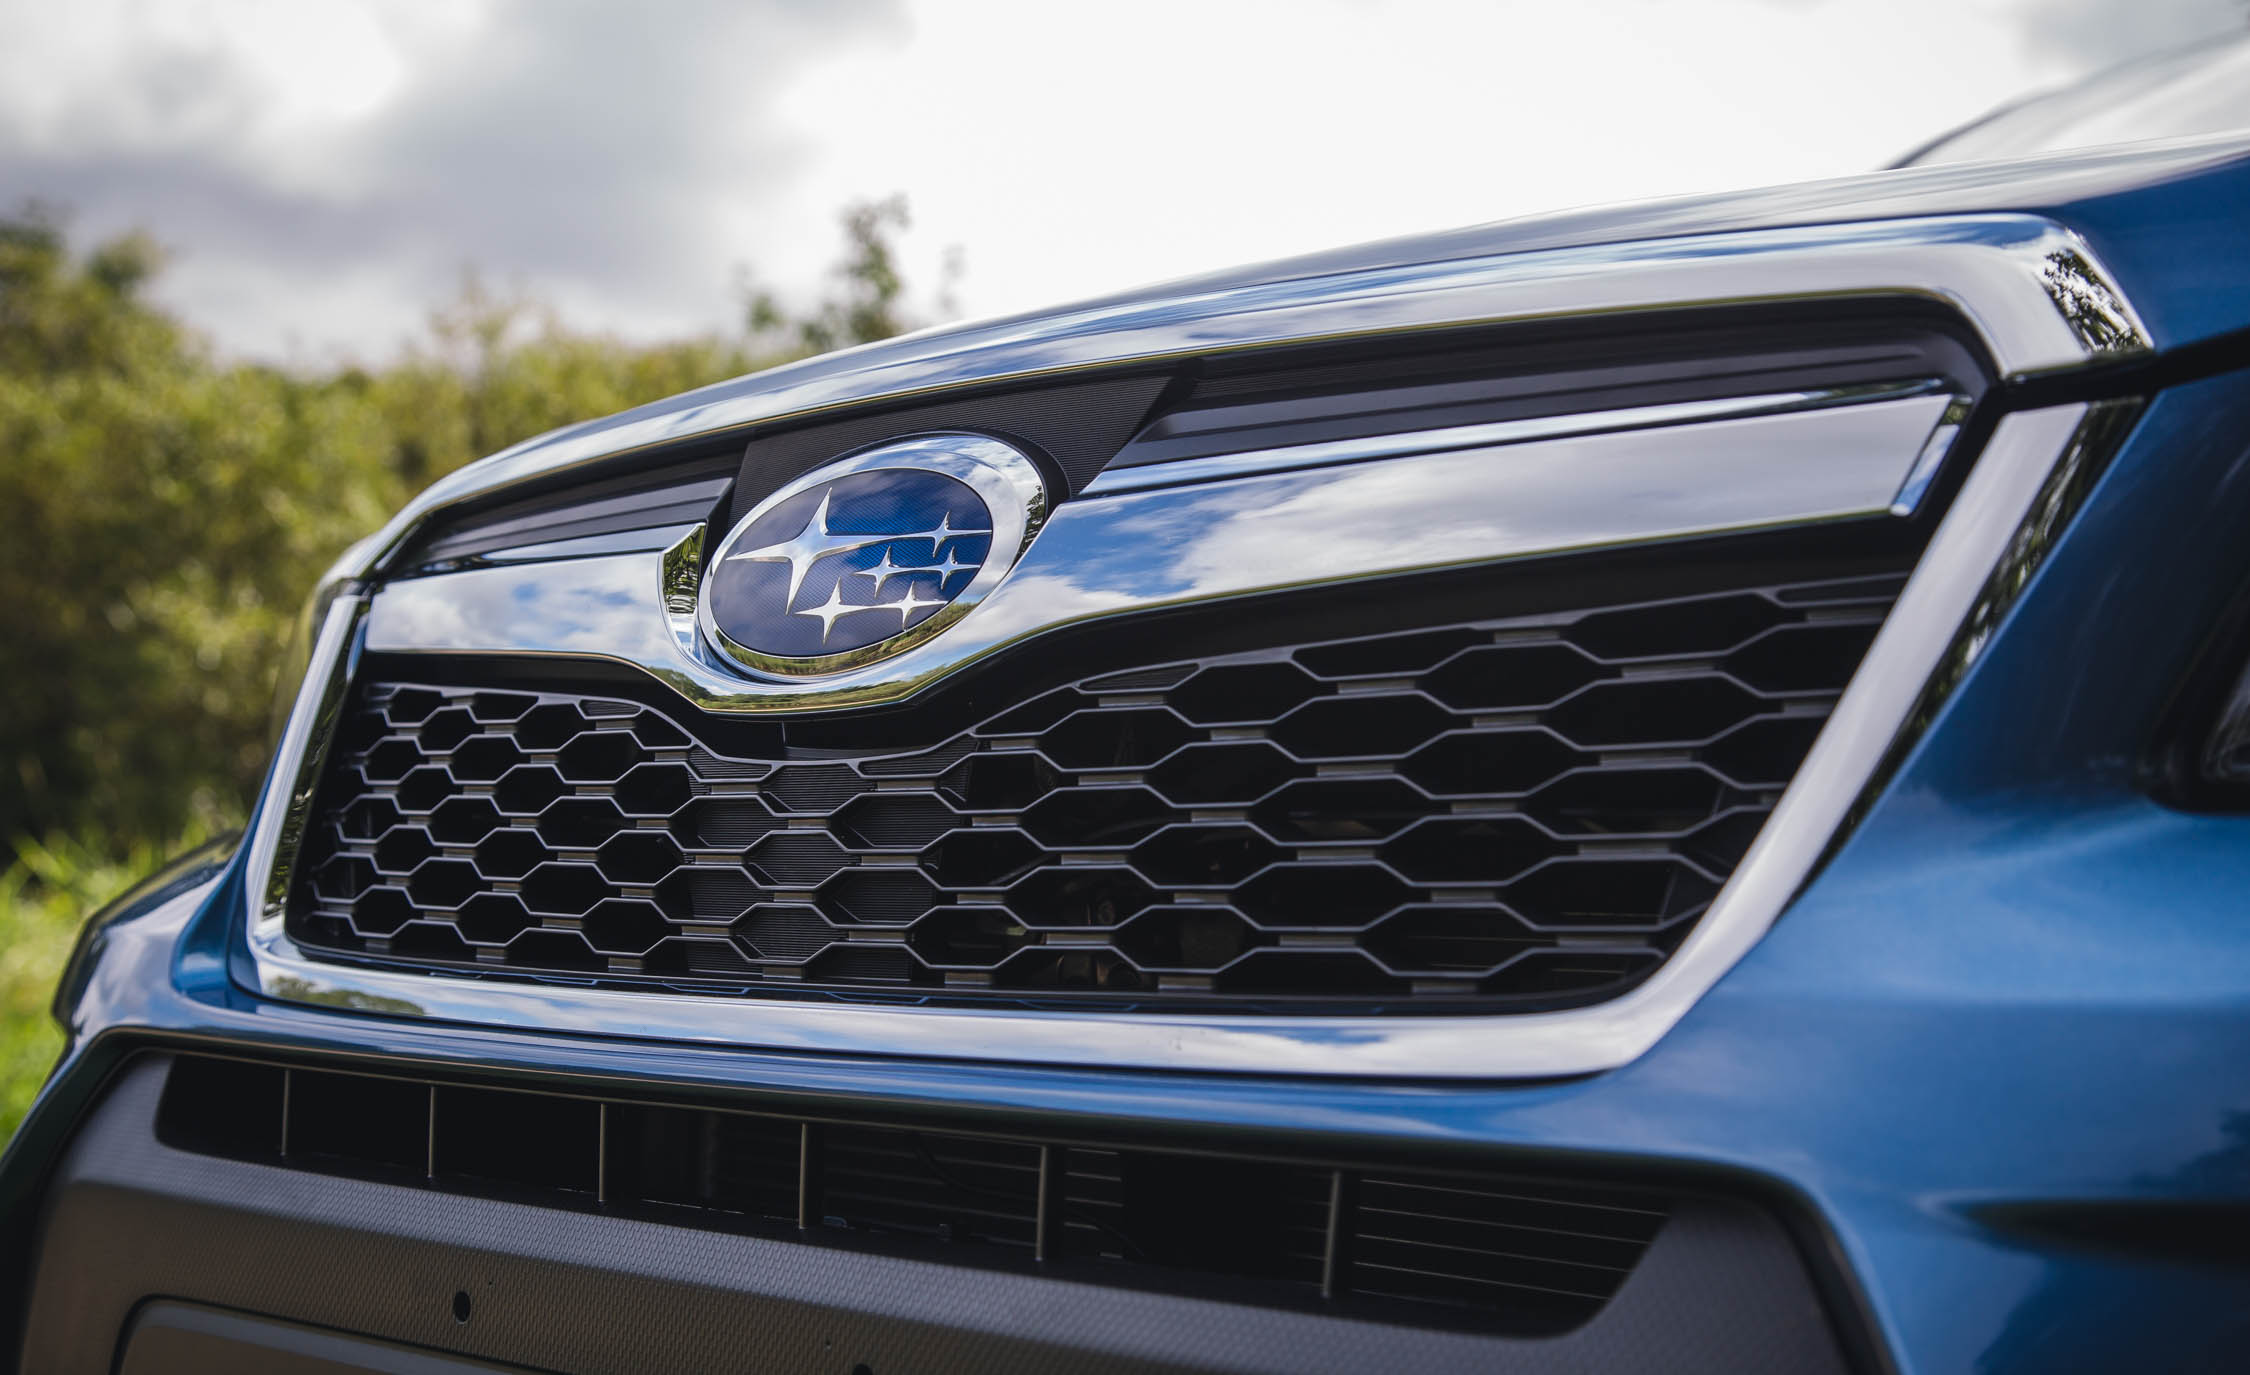 2016 Subaru Forester 2.0XT Touring Exterior Grille